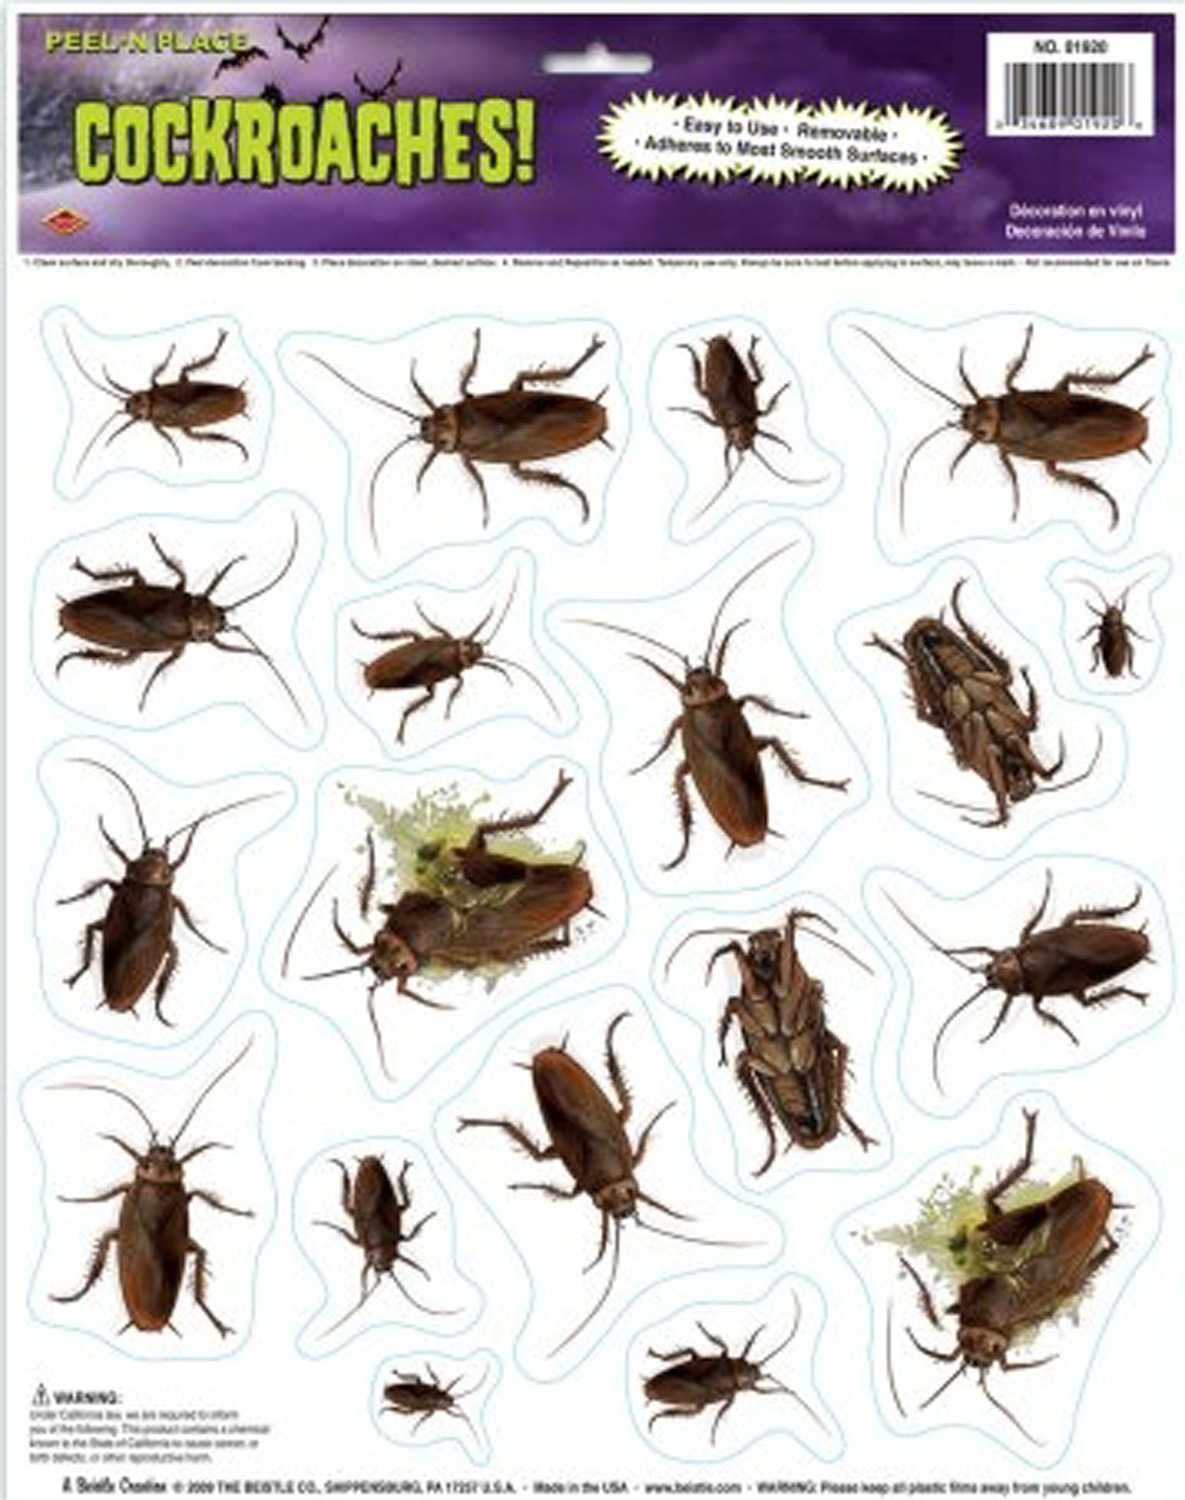 creepy bugs horror cockroaches grabber cling dirty kitchen insects halloween decoration costume party prop horror peel